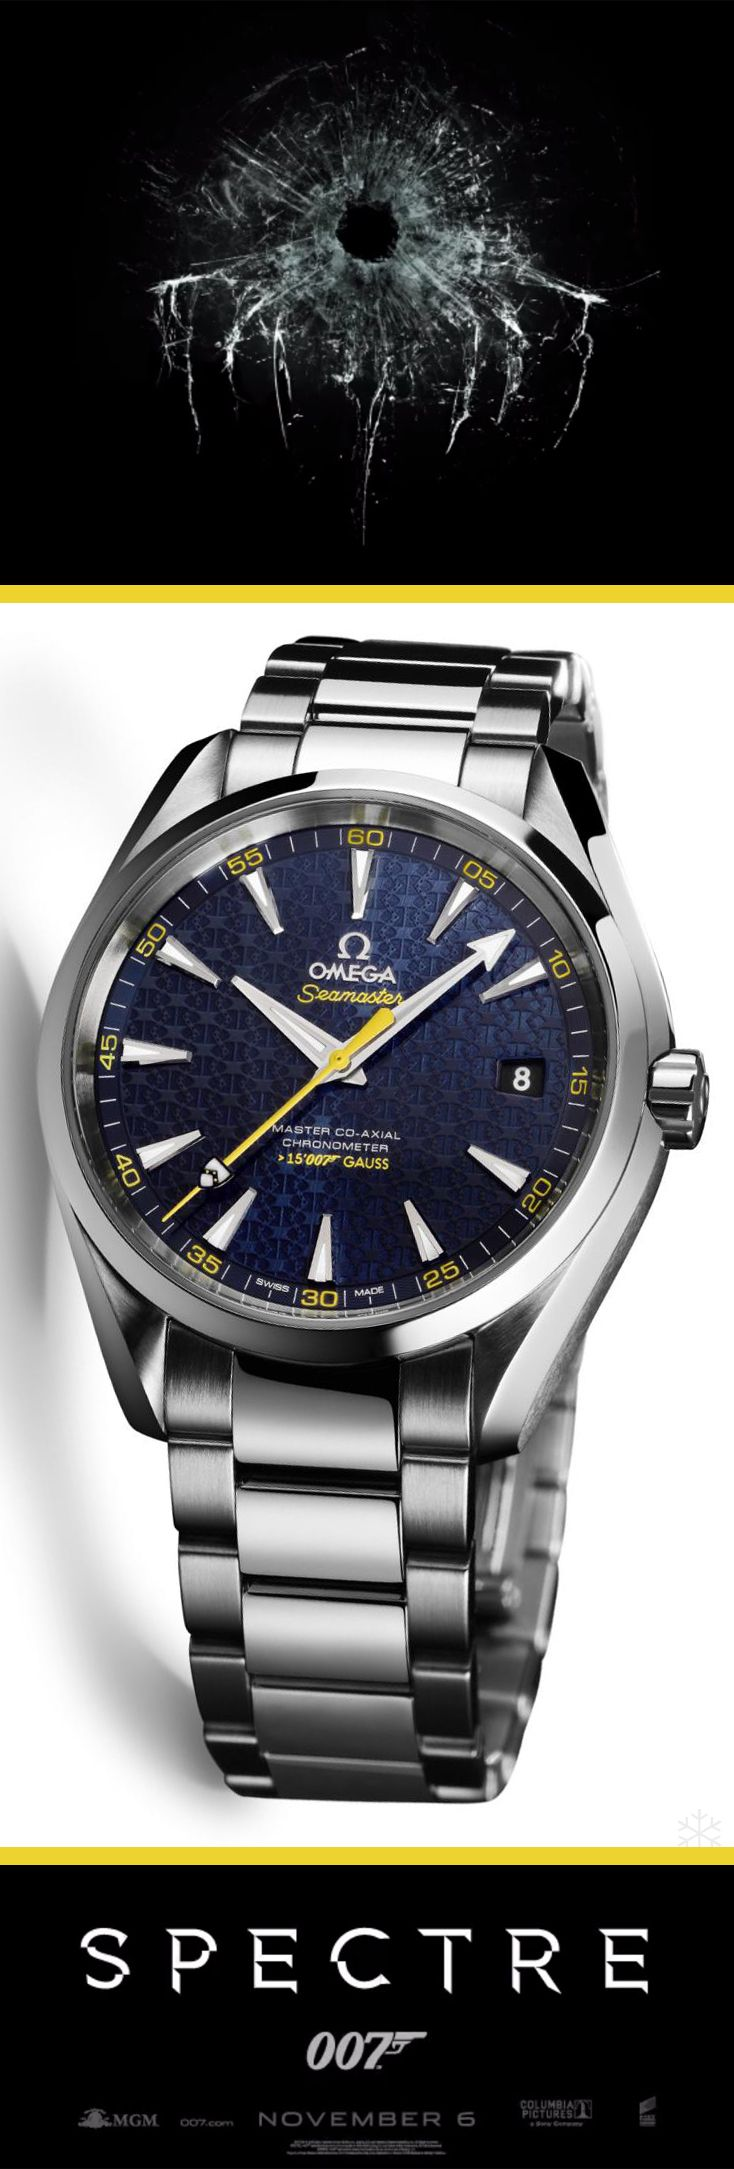 In anticipation of the new James Bond 007 movie, Spectre, Omega, the official watch of James Bond, has debuted a new James Bond-themed timepiece with the limited edition Omega Seamaster Aqua Terra > 15,007 Gauss. The watch is based on the popular  Omega Aqua Terra > 15,000. The most distinctive elements of the new limited edition > 15,007 Gauss watch is the special colors as well as the use of the James Bond family coat-of-arms.